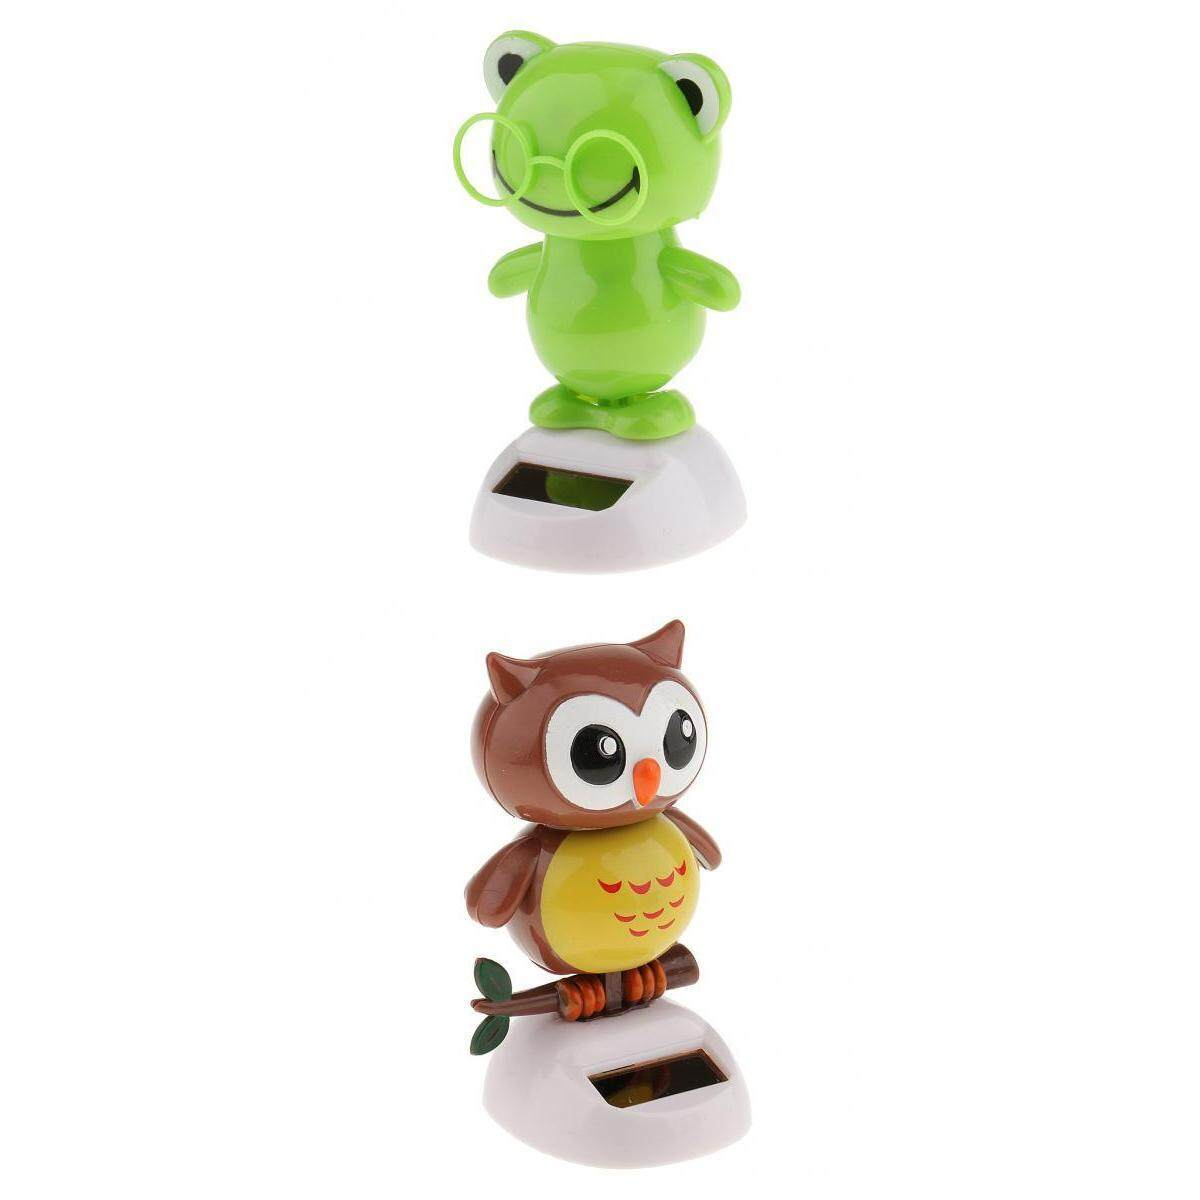 Perfk Set of 2 Solar Powered Solar Powered Toy Bobble Dashboard Dancing Dancer Car Decor Frog+Owl